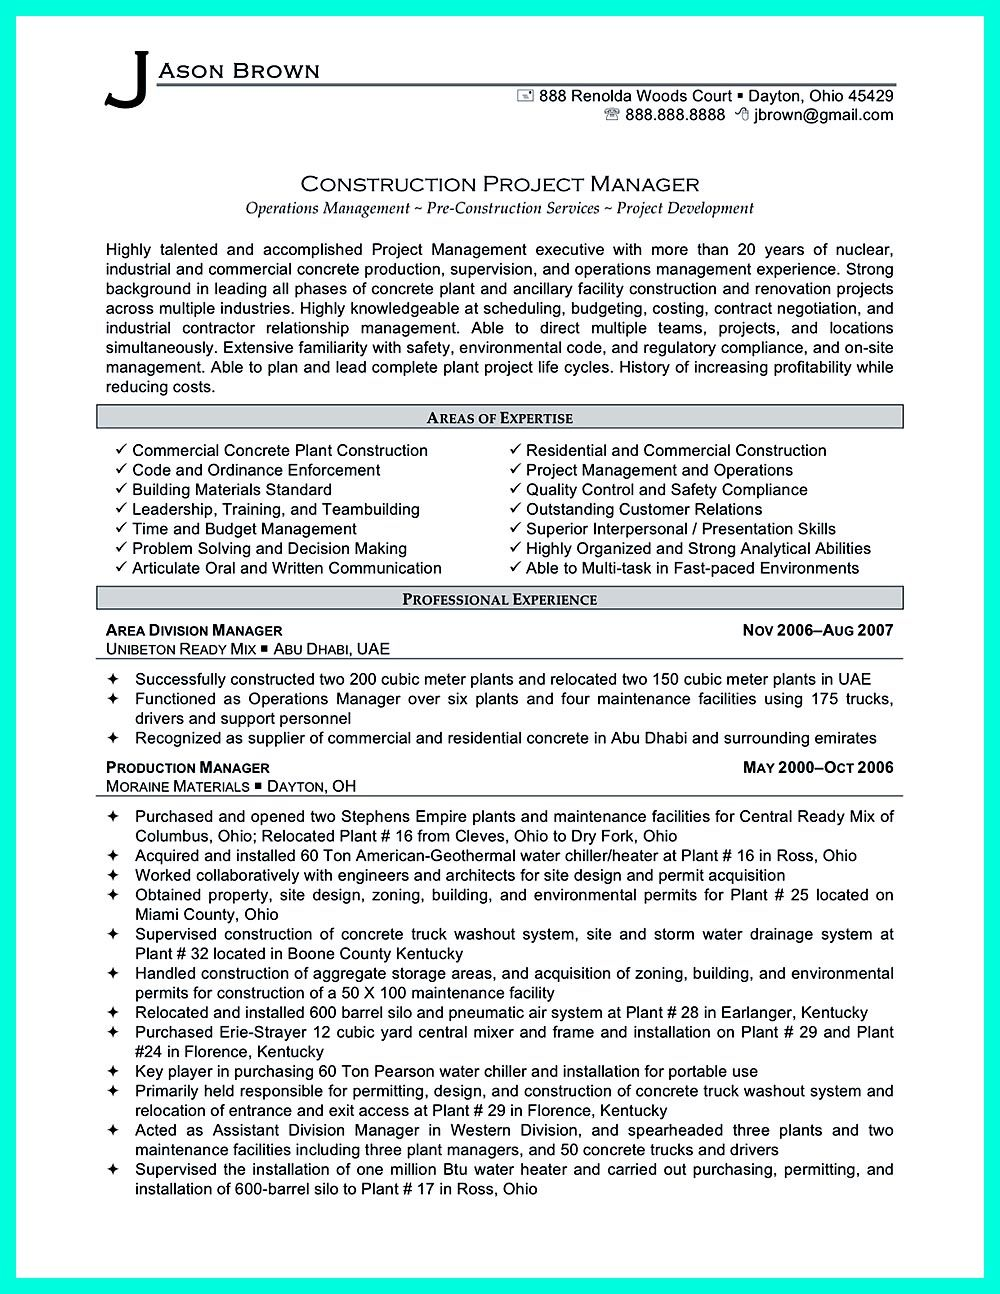 construction manager resume can be designed for a professional